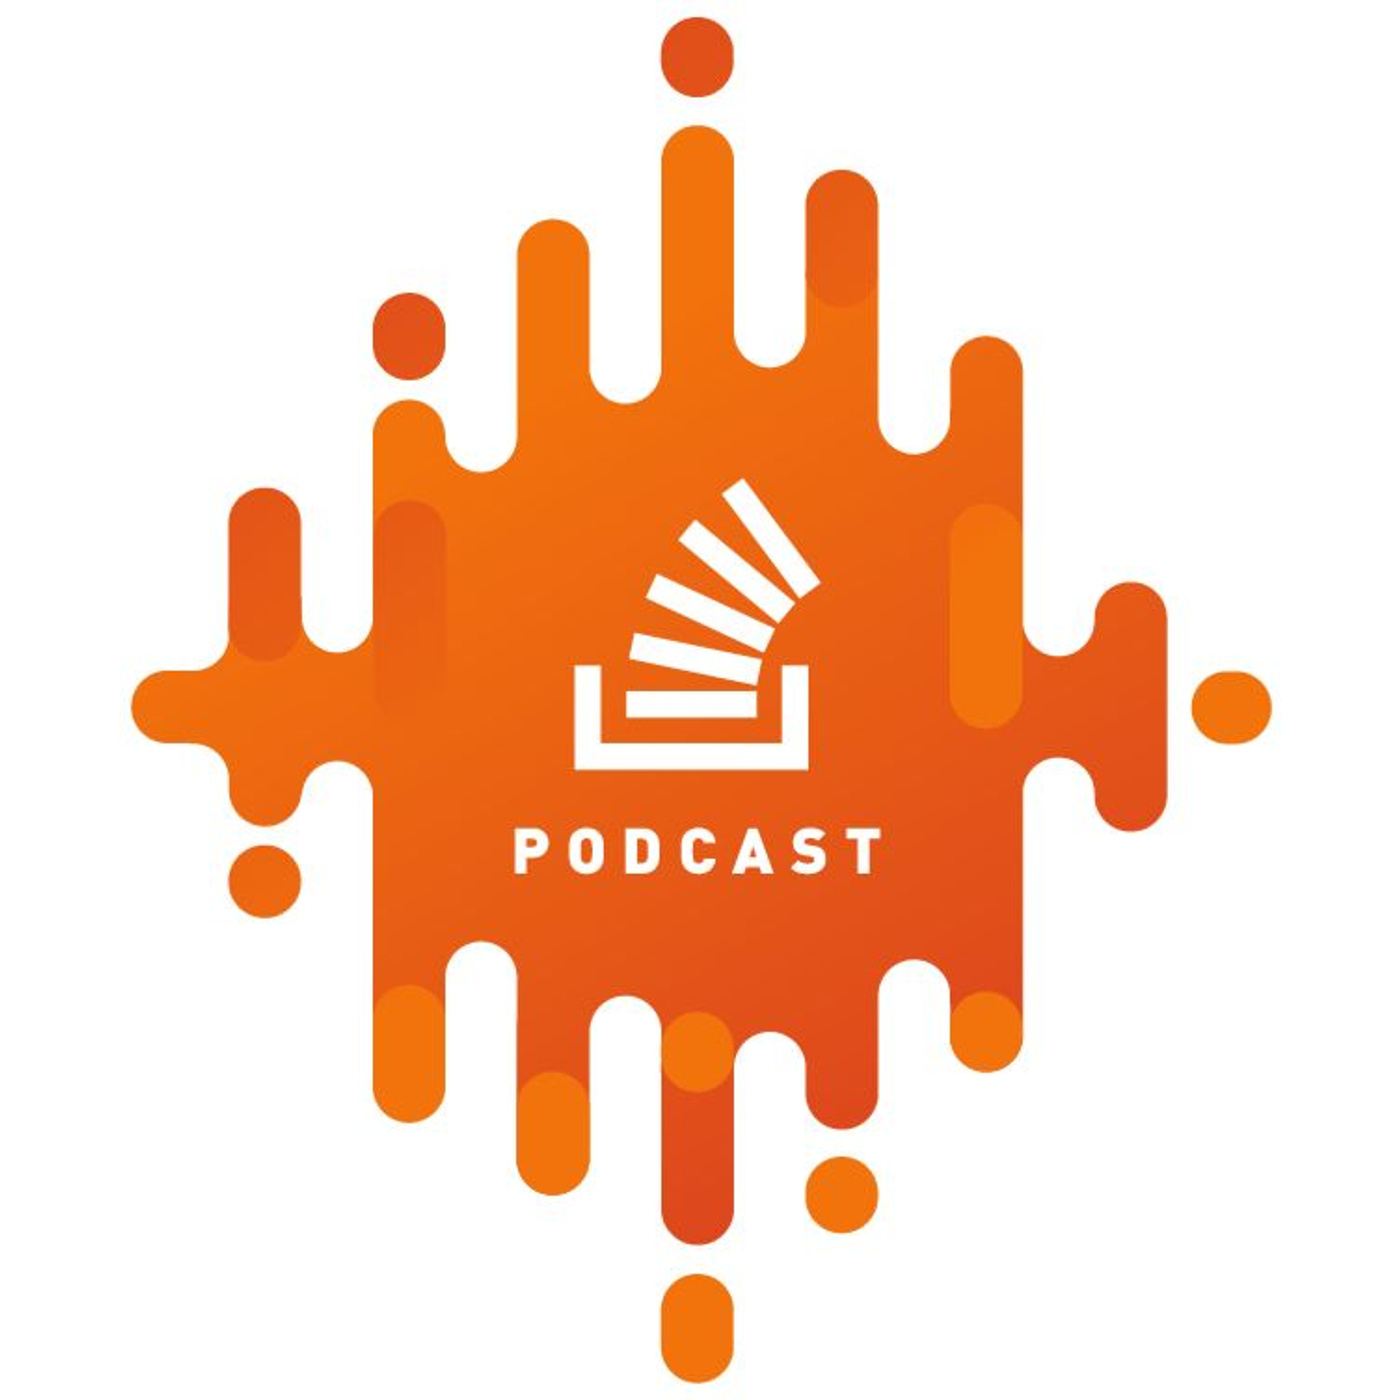 Podcast #115 - Stack Overflow Reads Mean Tweets